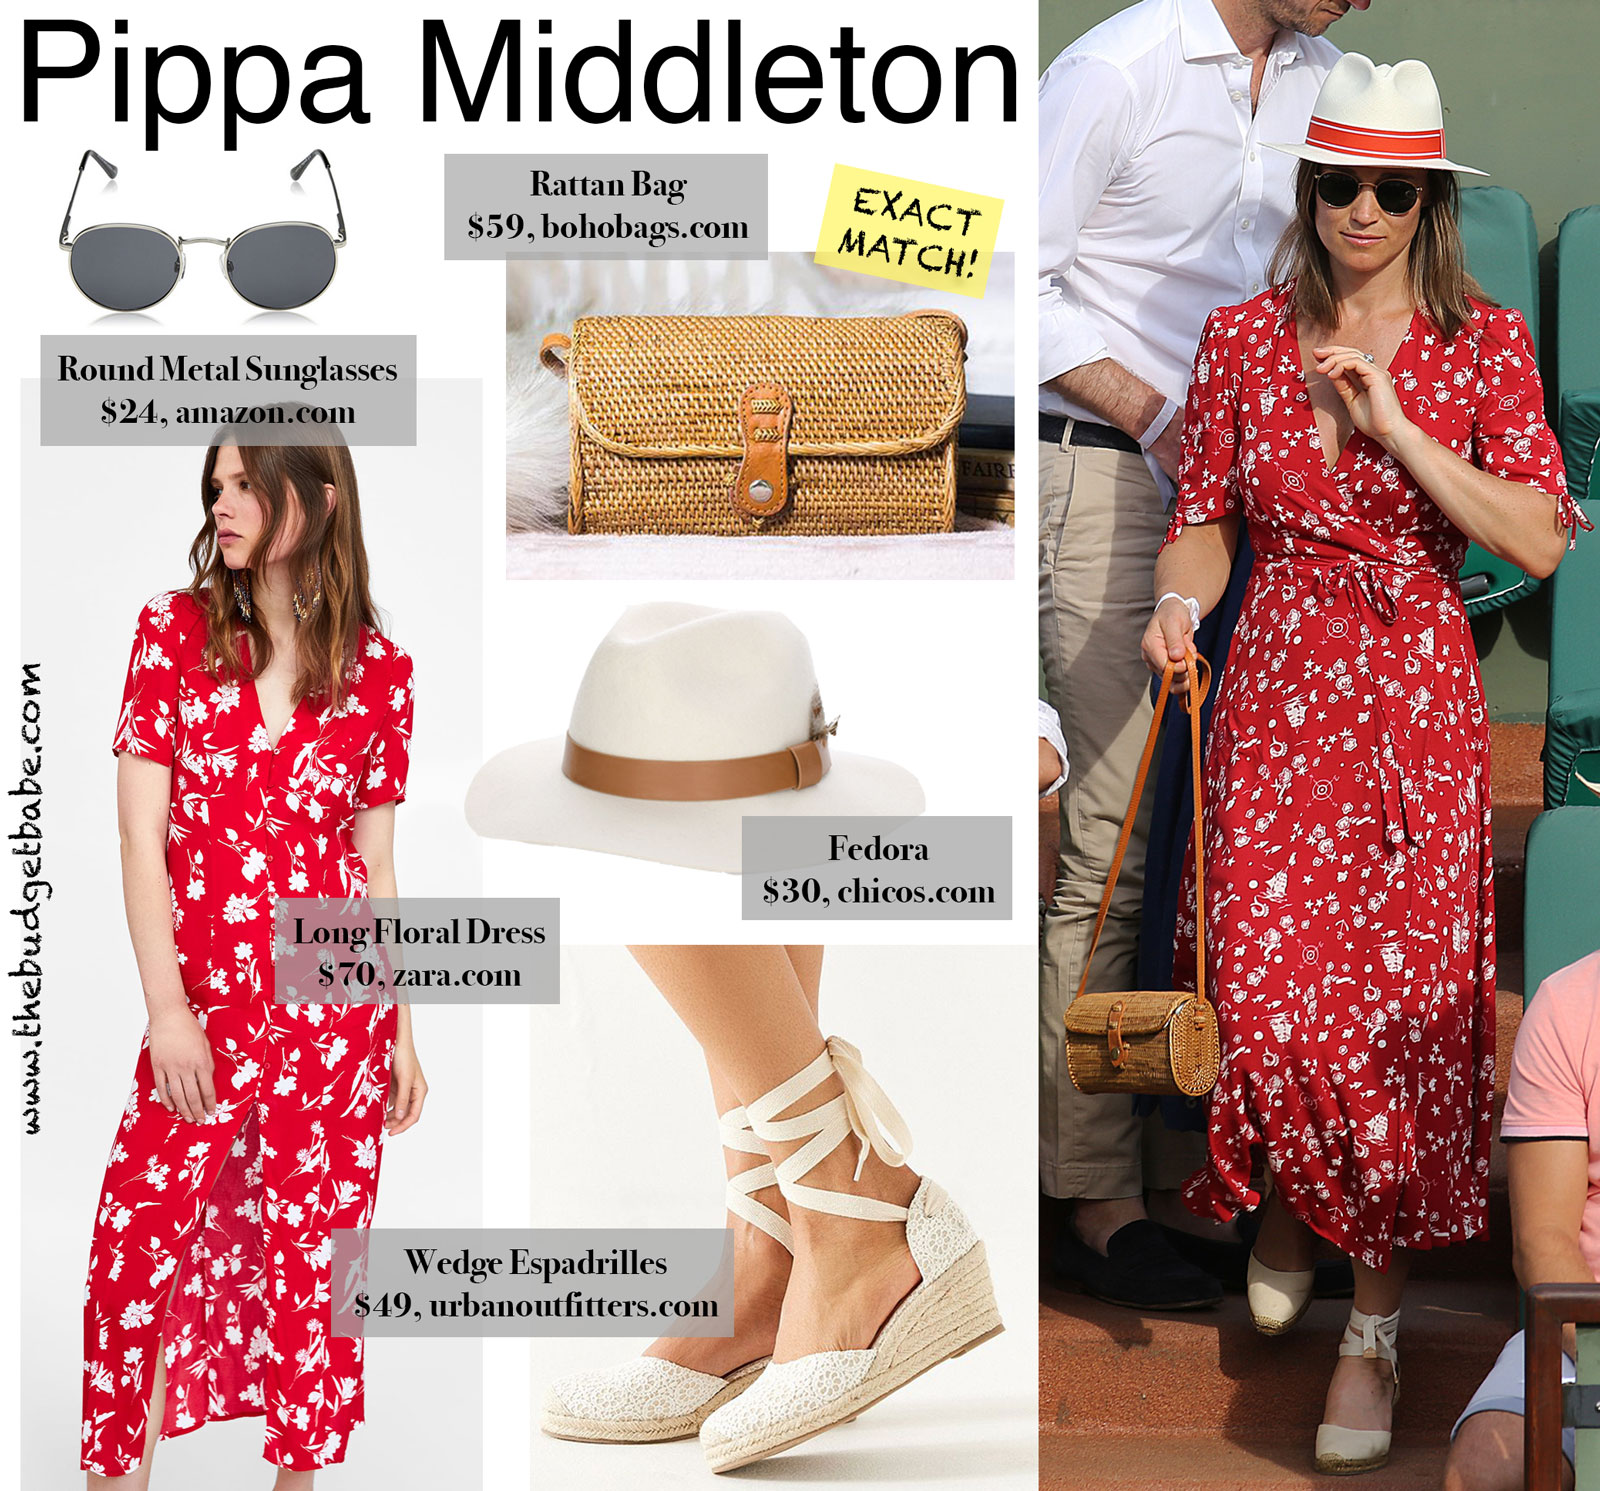 Pippa Middleton's Red Floral Wrap Dress Look for Less